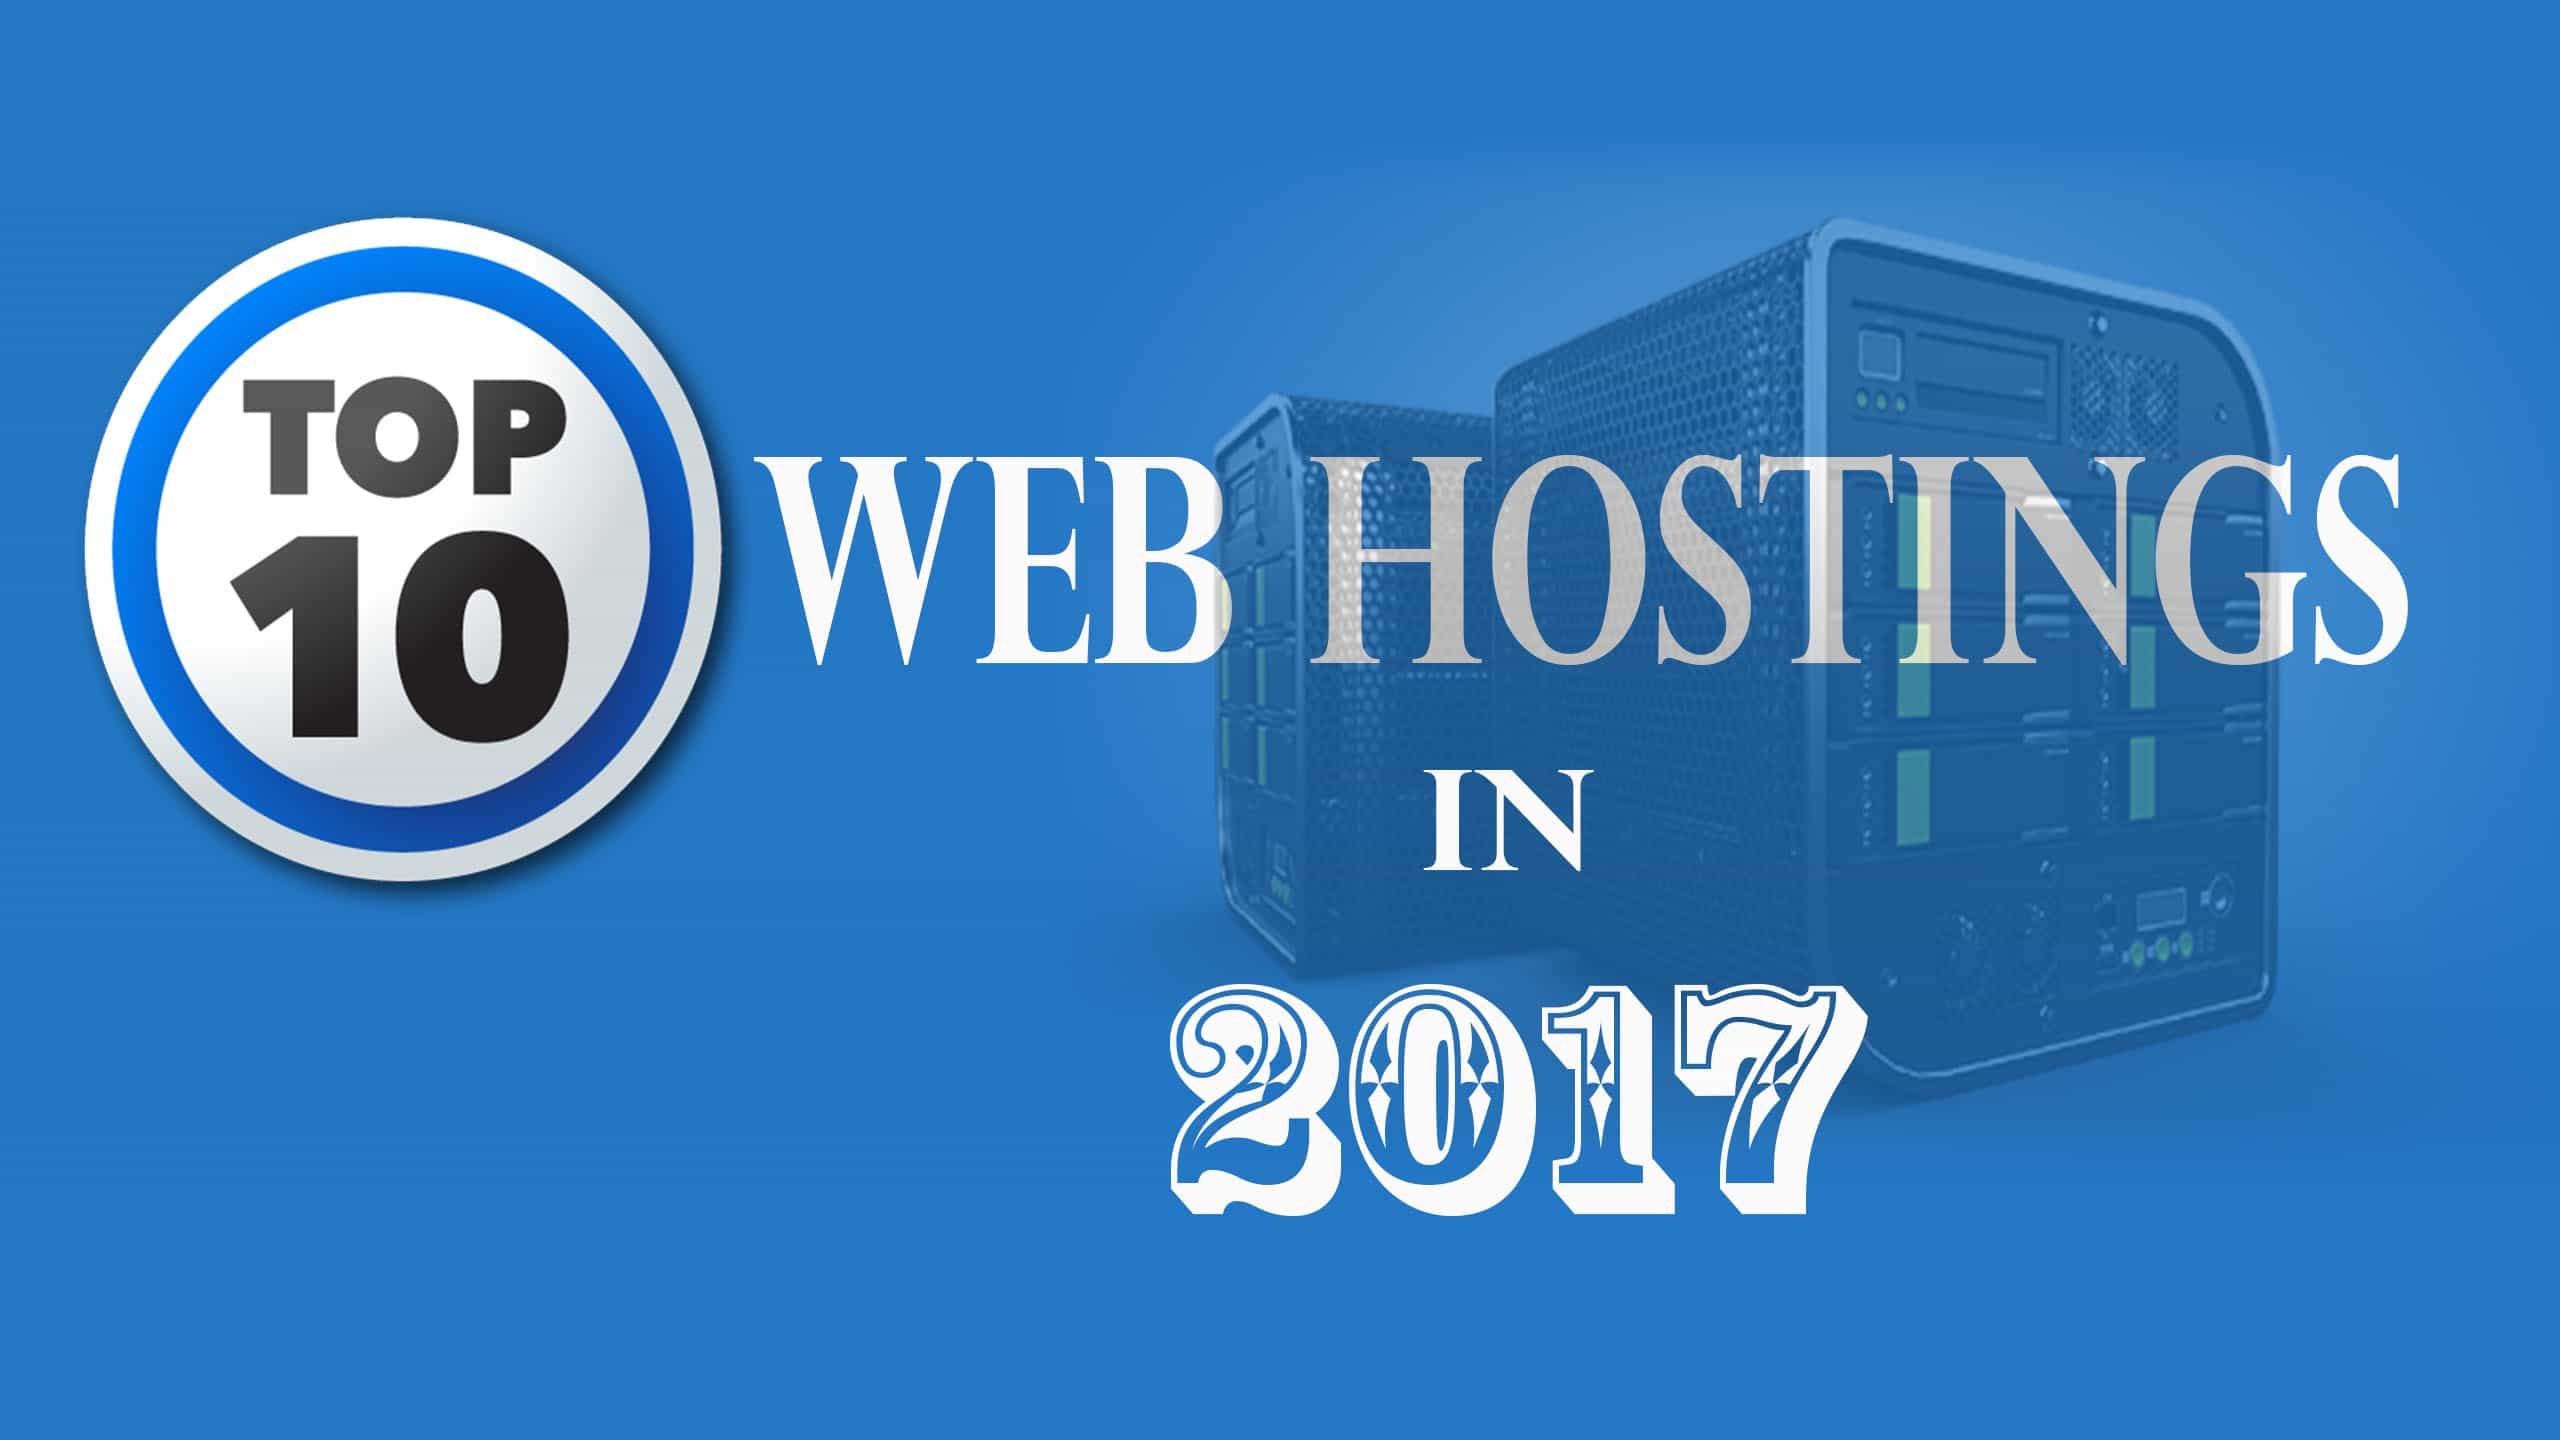 BEST WEB HOSTINGS 2017